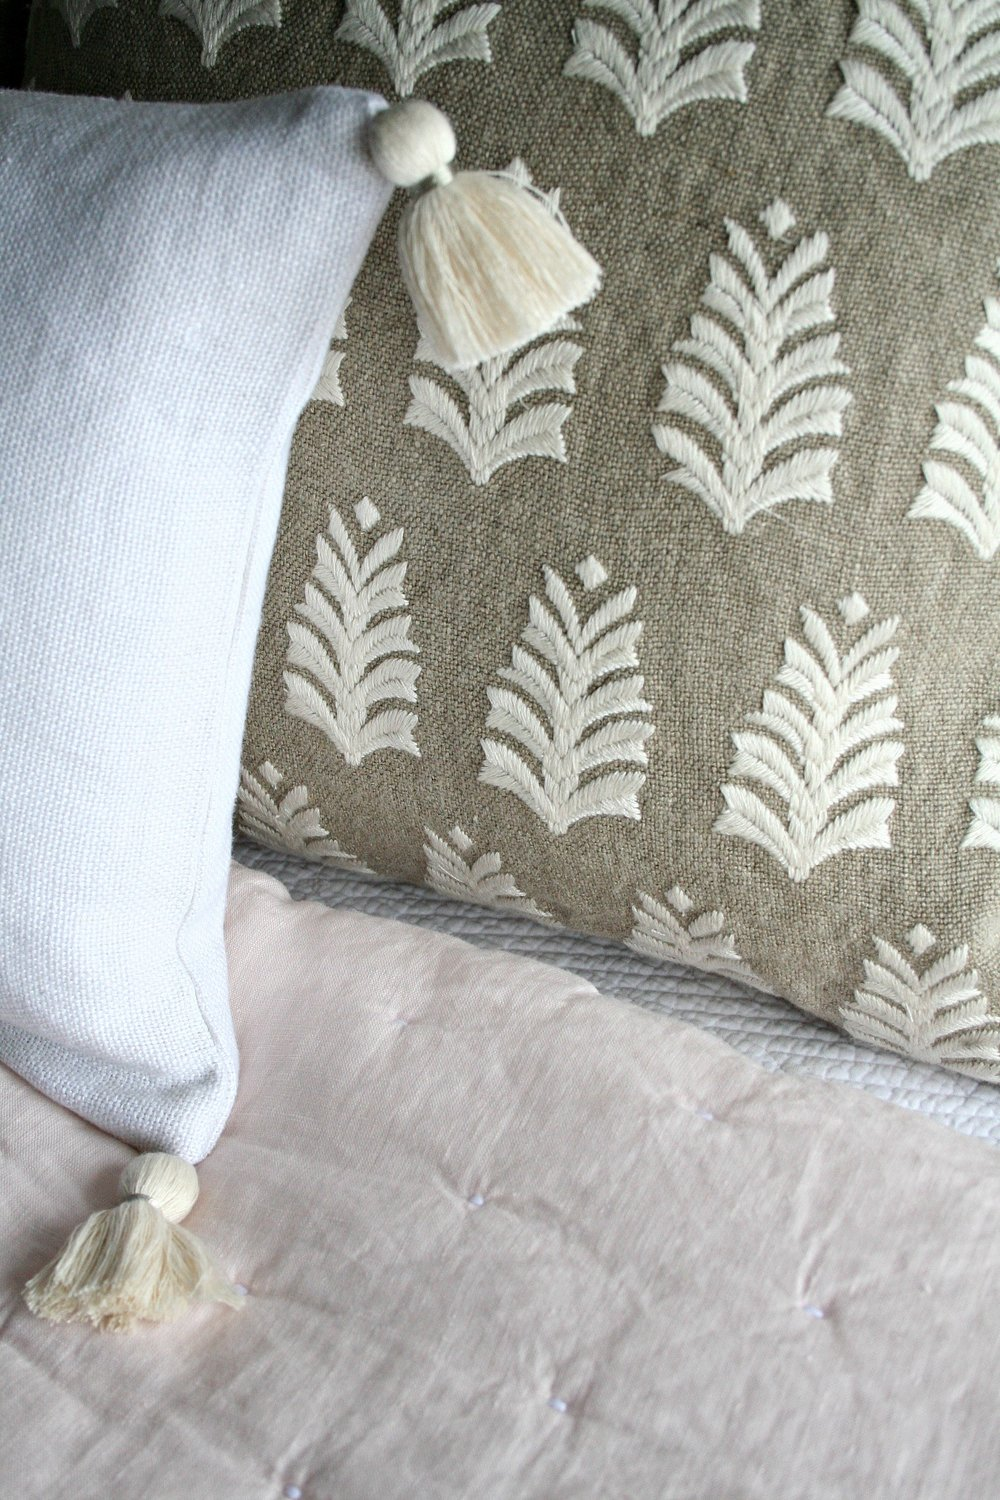 Embroidered Pillow Details